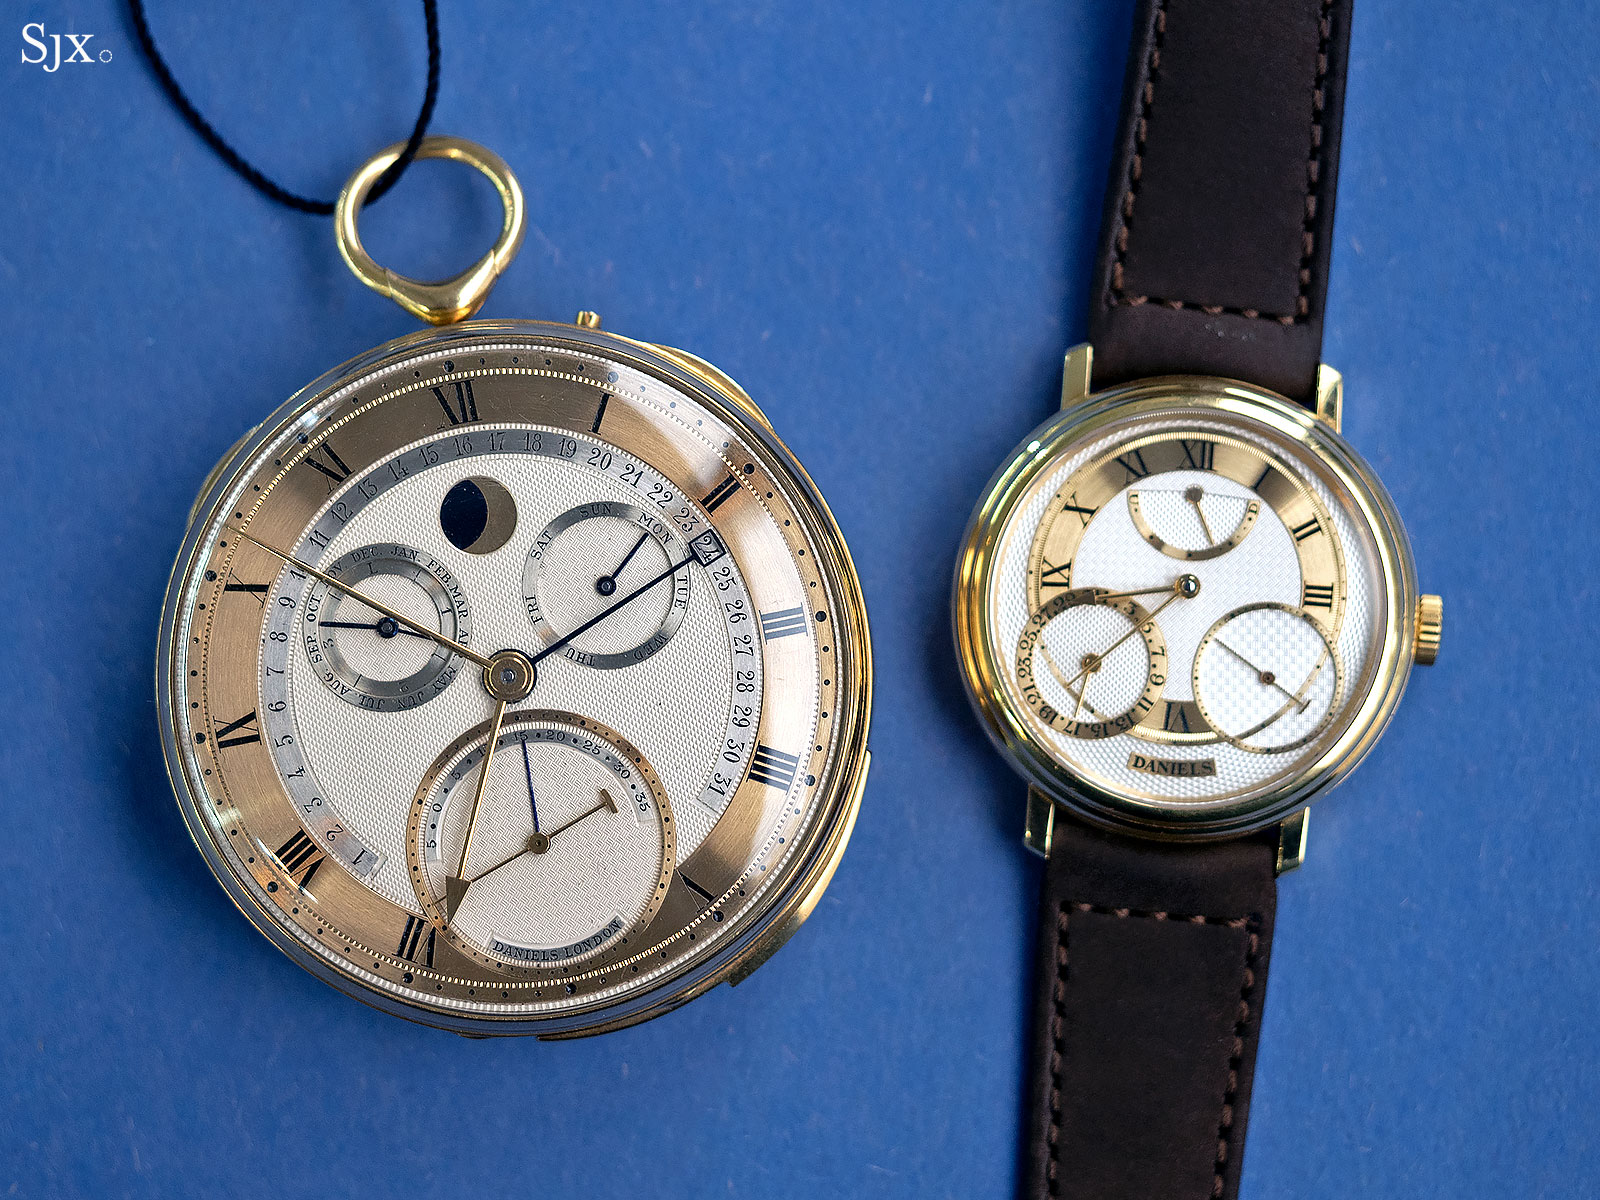 George Daniels Grand Complication pocket watch 27